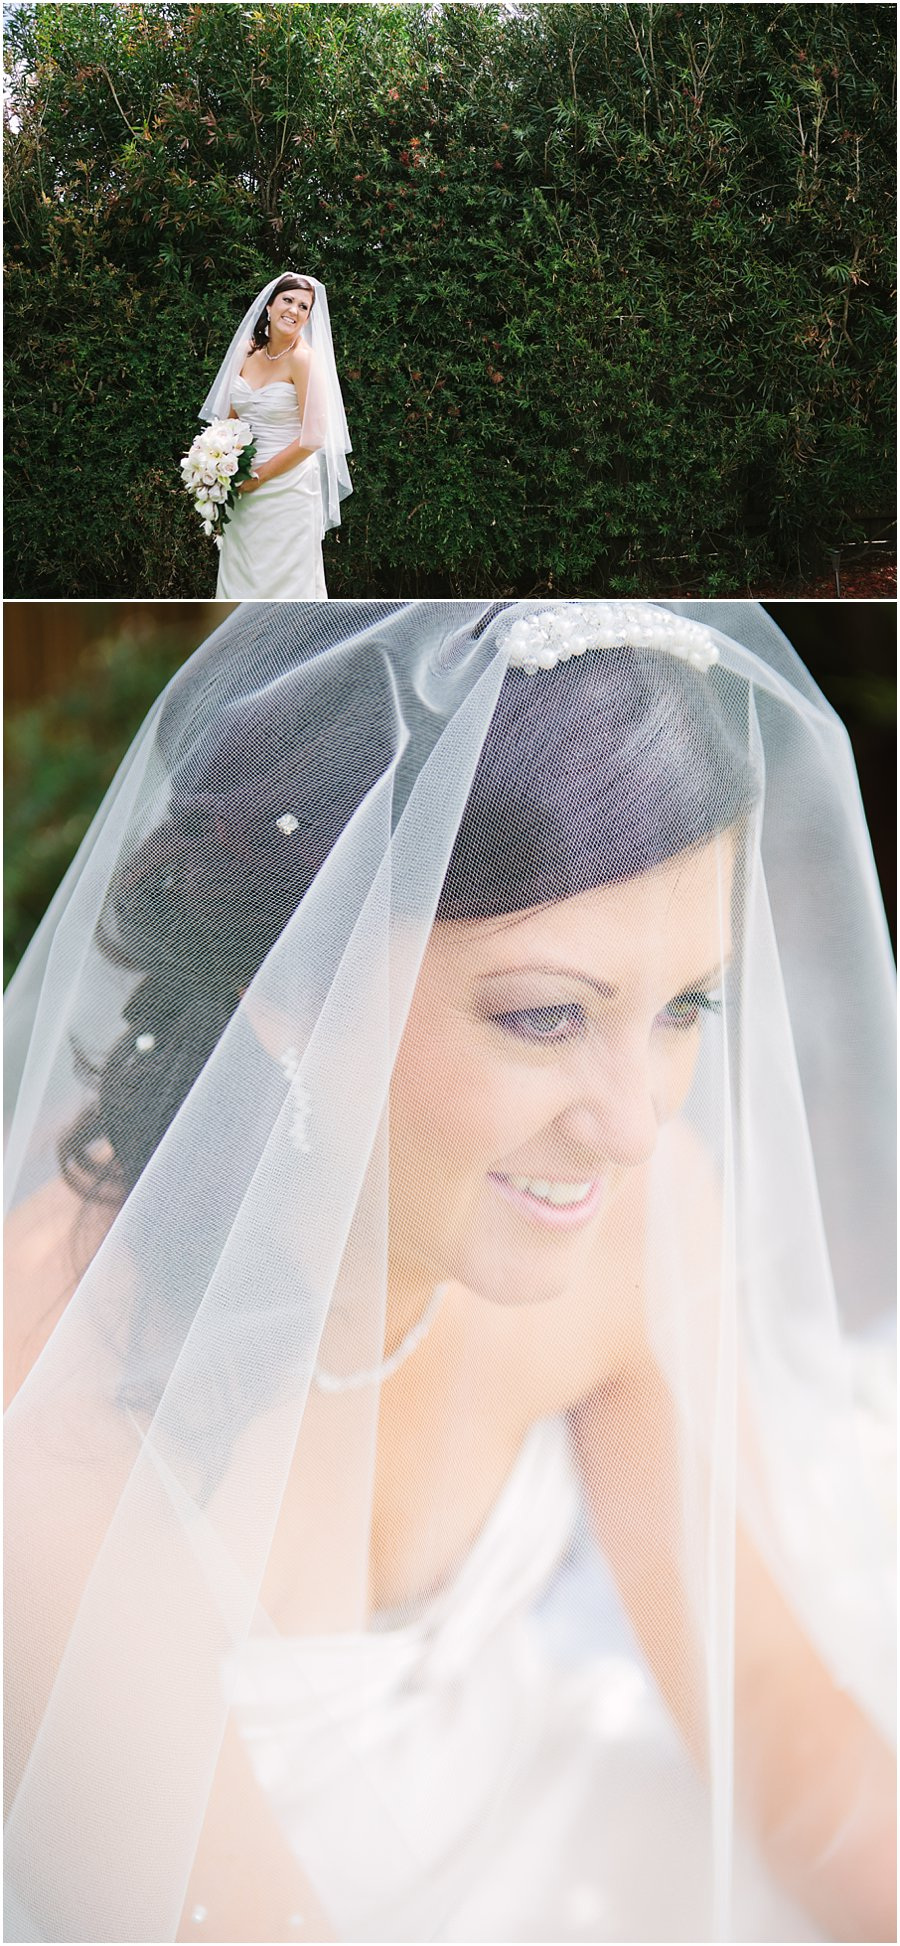 Christian_Chanelle_Harvey_Lancefield_Wedding_05